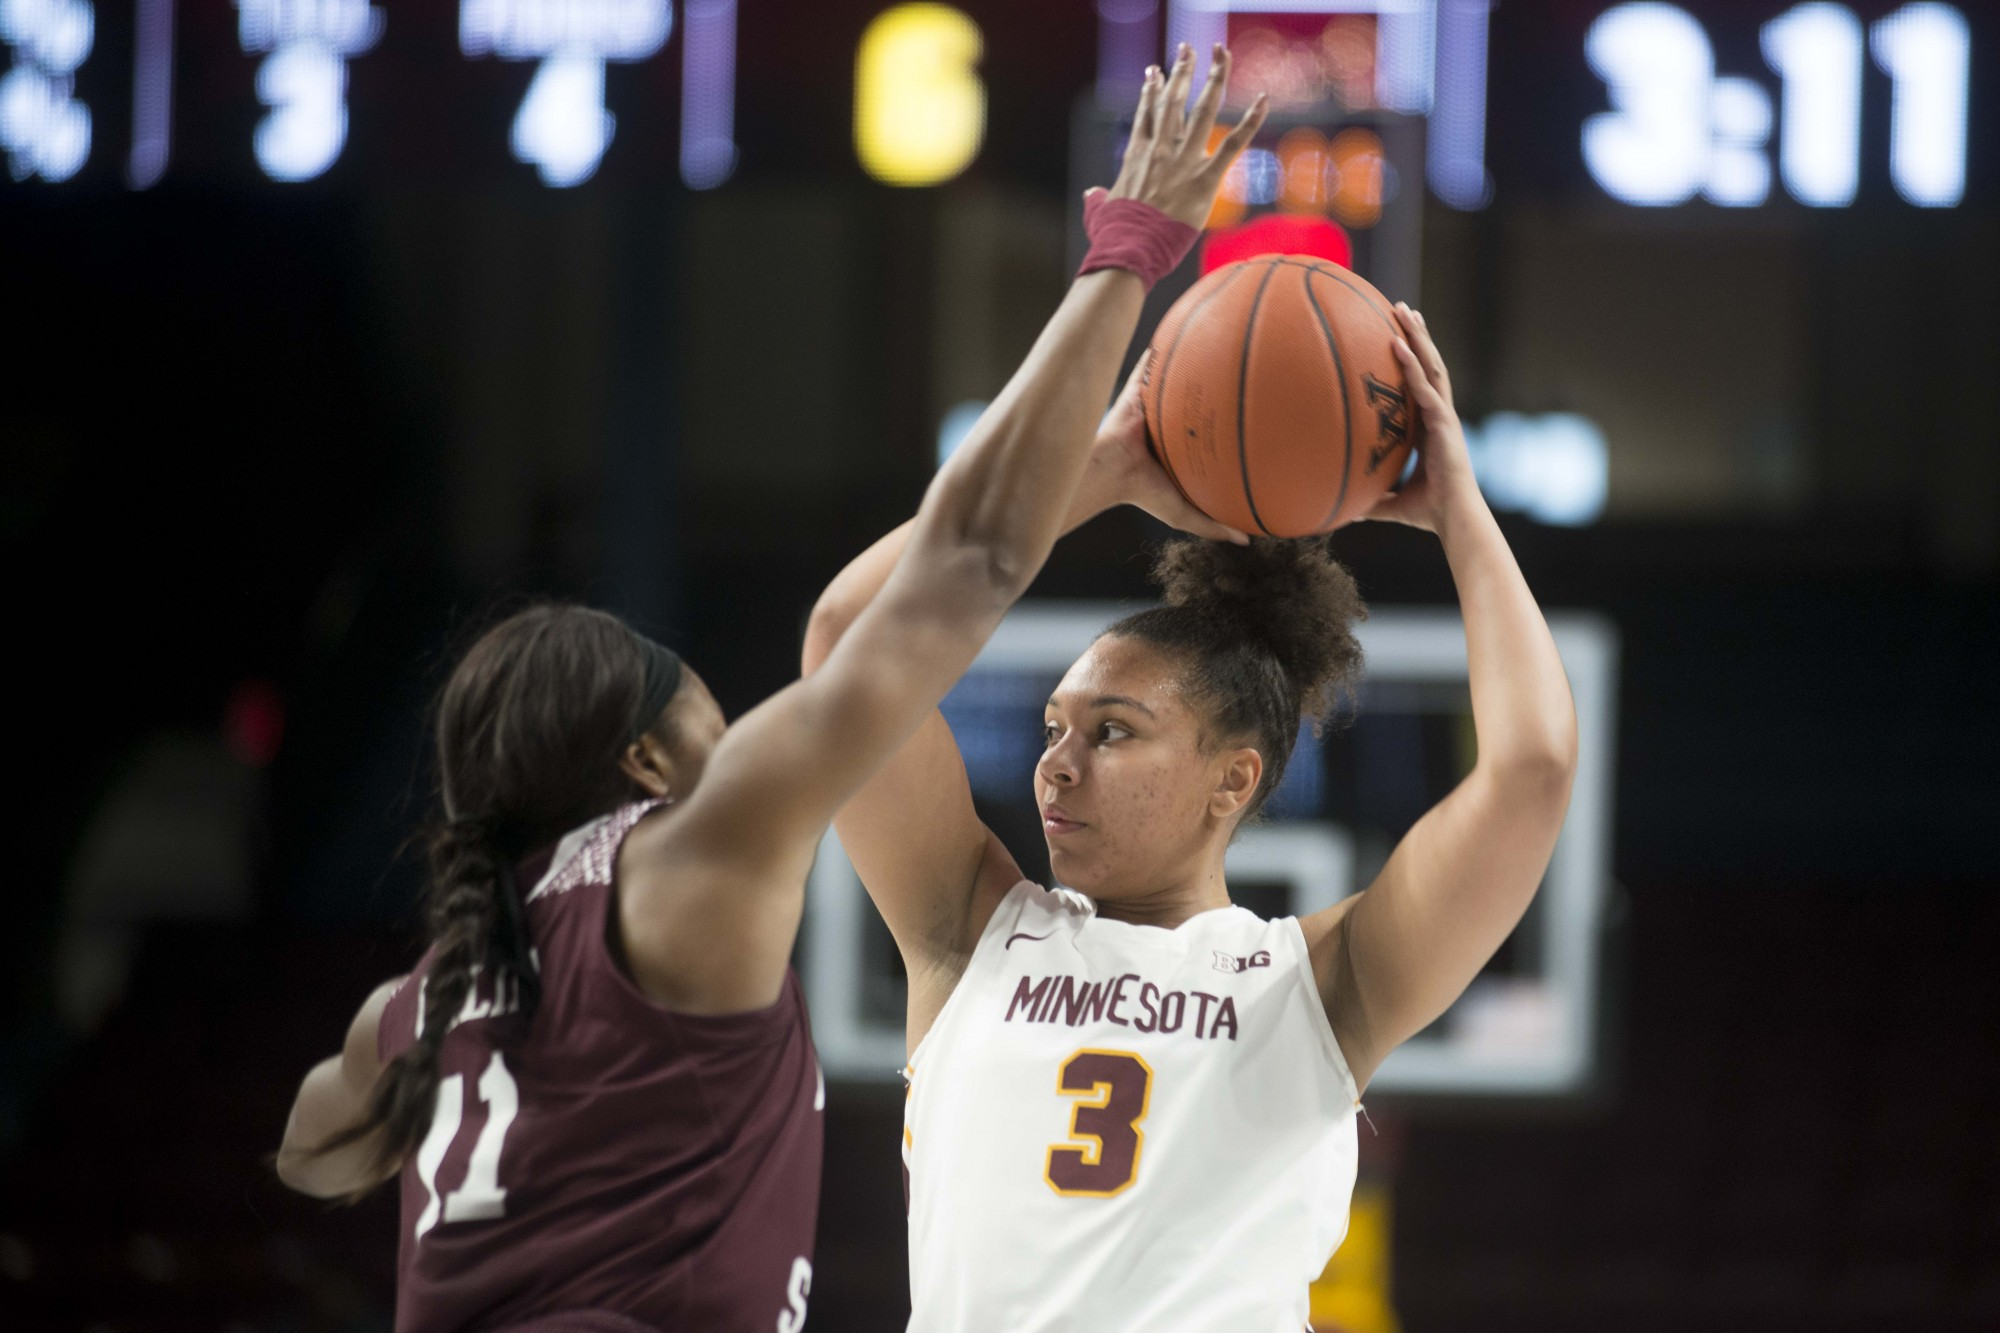 Forward Destiny Pitts looks to pass the ball through a defender at Williams Arena on Tuesday, Nov. 5. The Gophers fell to Missouri State 69-77.